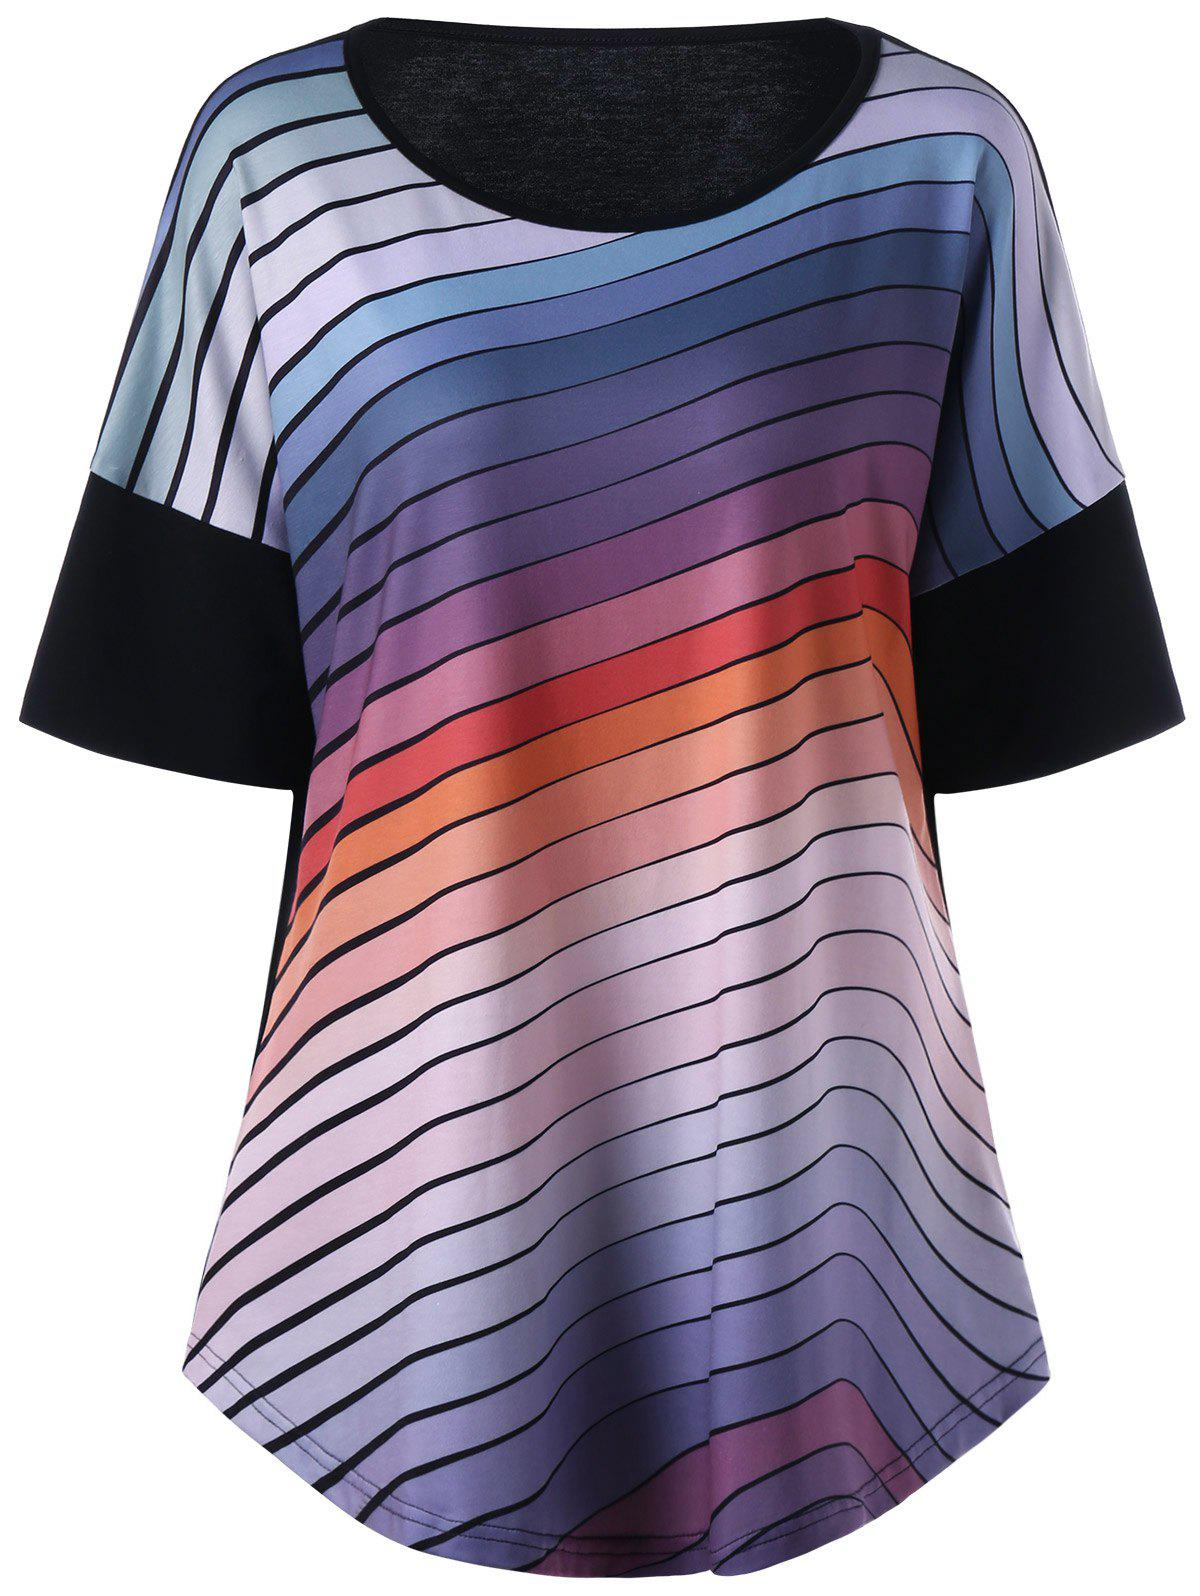 Plus Size Ombre Striped T-ShirtWOMEN<br><br>Size: 3XL; Color: STRIPE; Material: Polyester,Spandex; Shirt Length: Long; Sleeve Length: Short; Collar: Round Neck; Style: Casual; Season: Summer; Pattern Type: Striped; Weight: 0.3500kg; Package Contents: 1 x T-Shirt;